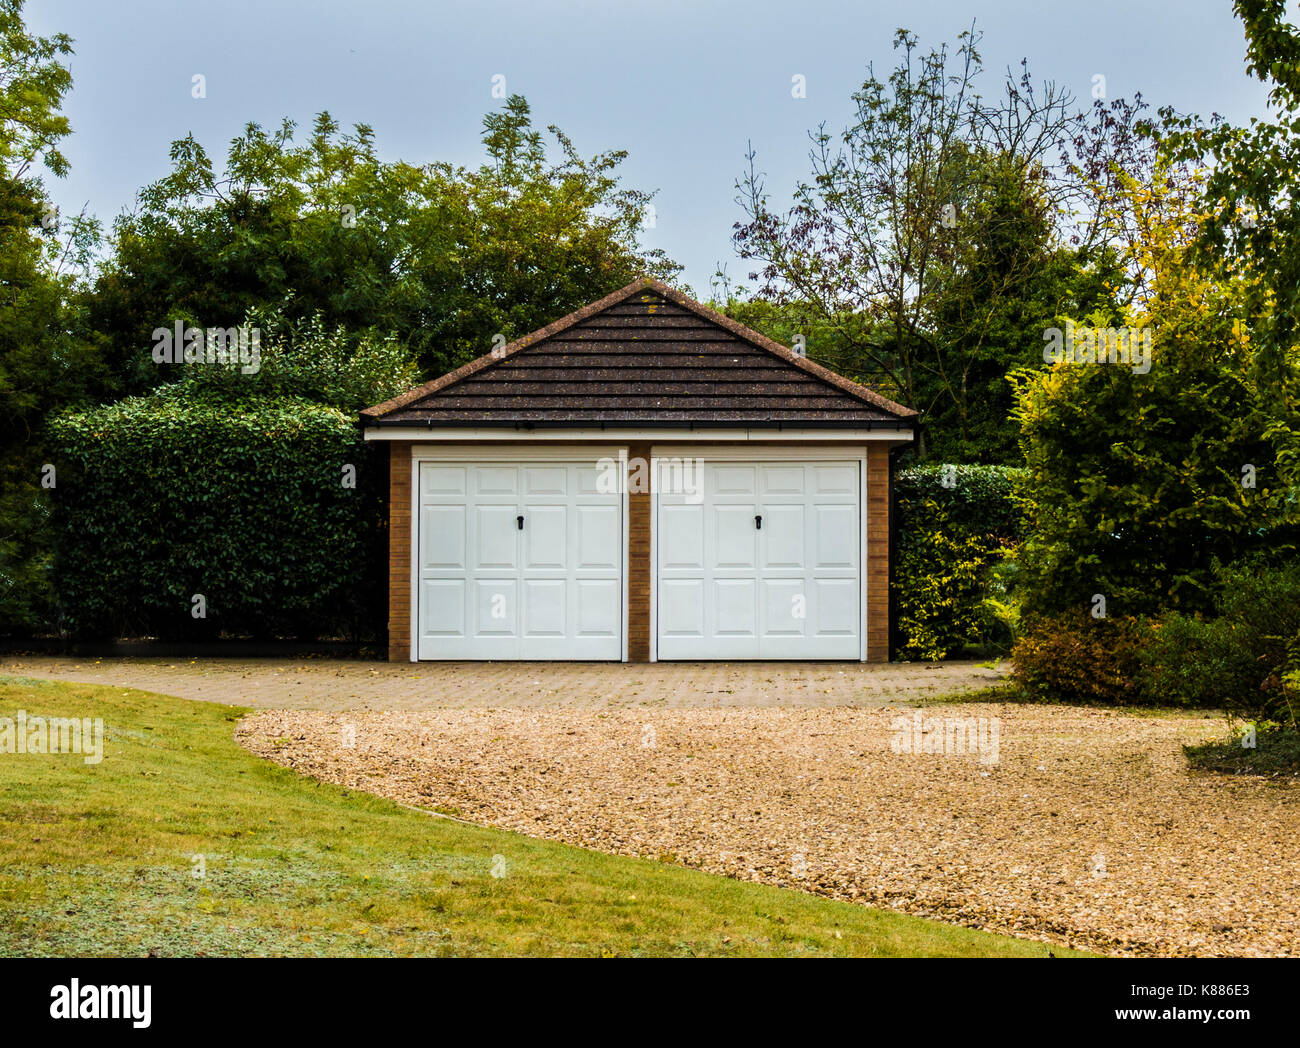 Modern Spacious Detached Double Garage With Matching White Doors Stock Photo Alamy